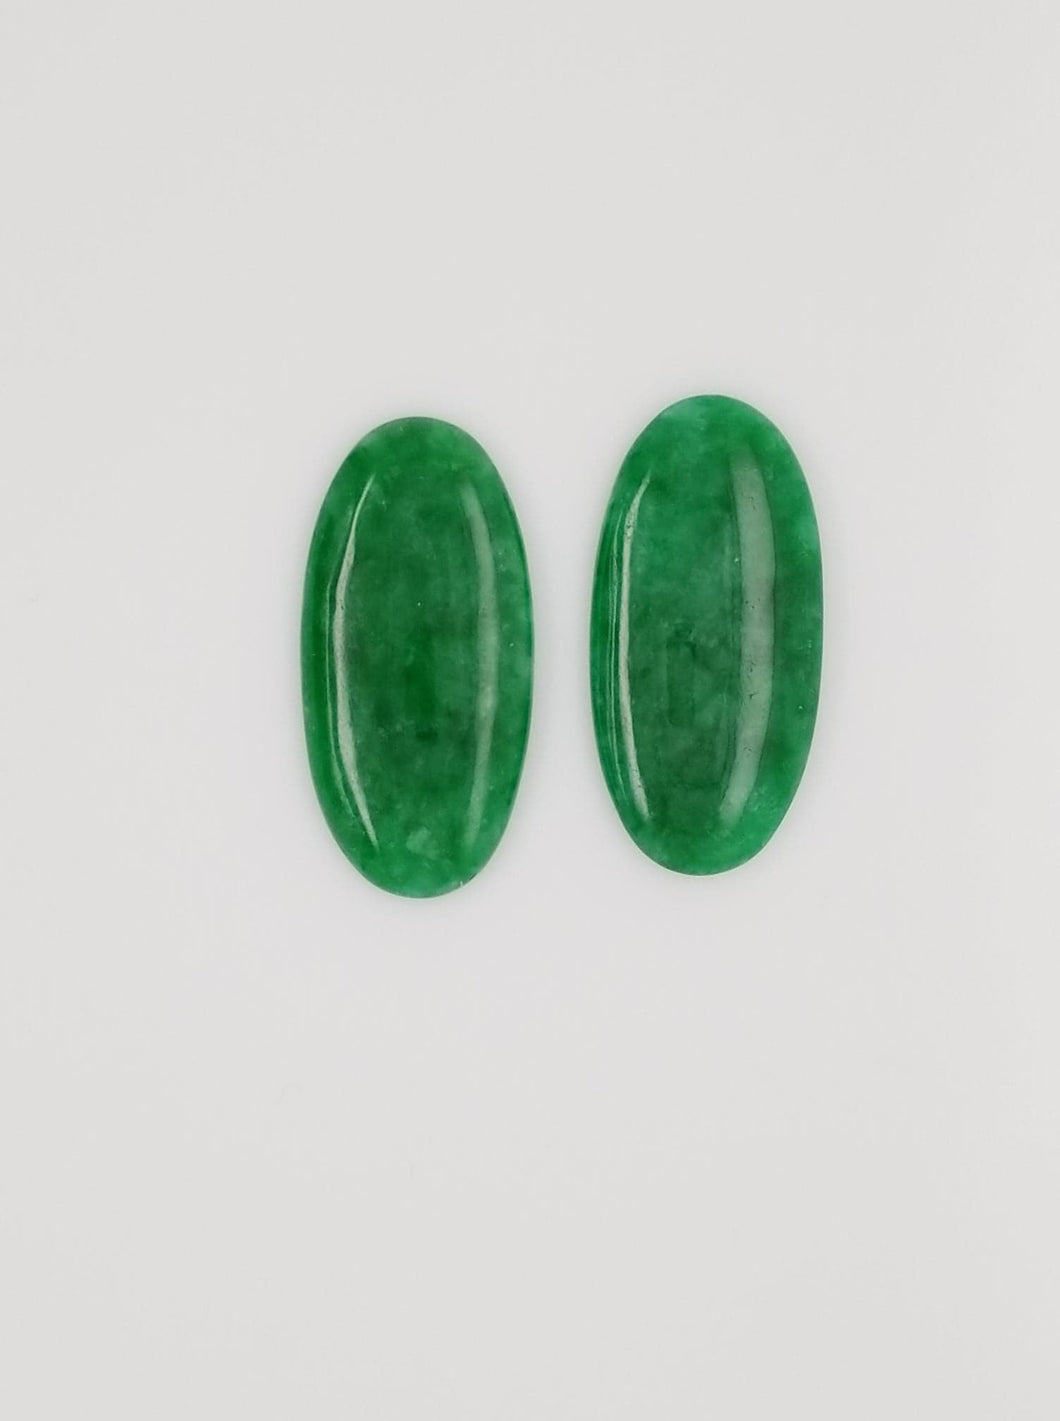 Burmese Jadeite Matching Cabochons Ovals total weight 31.46cts